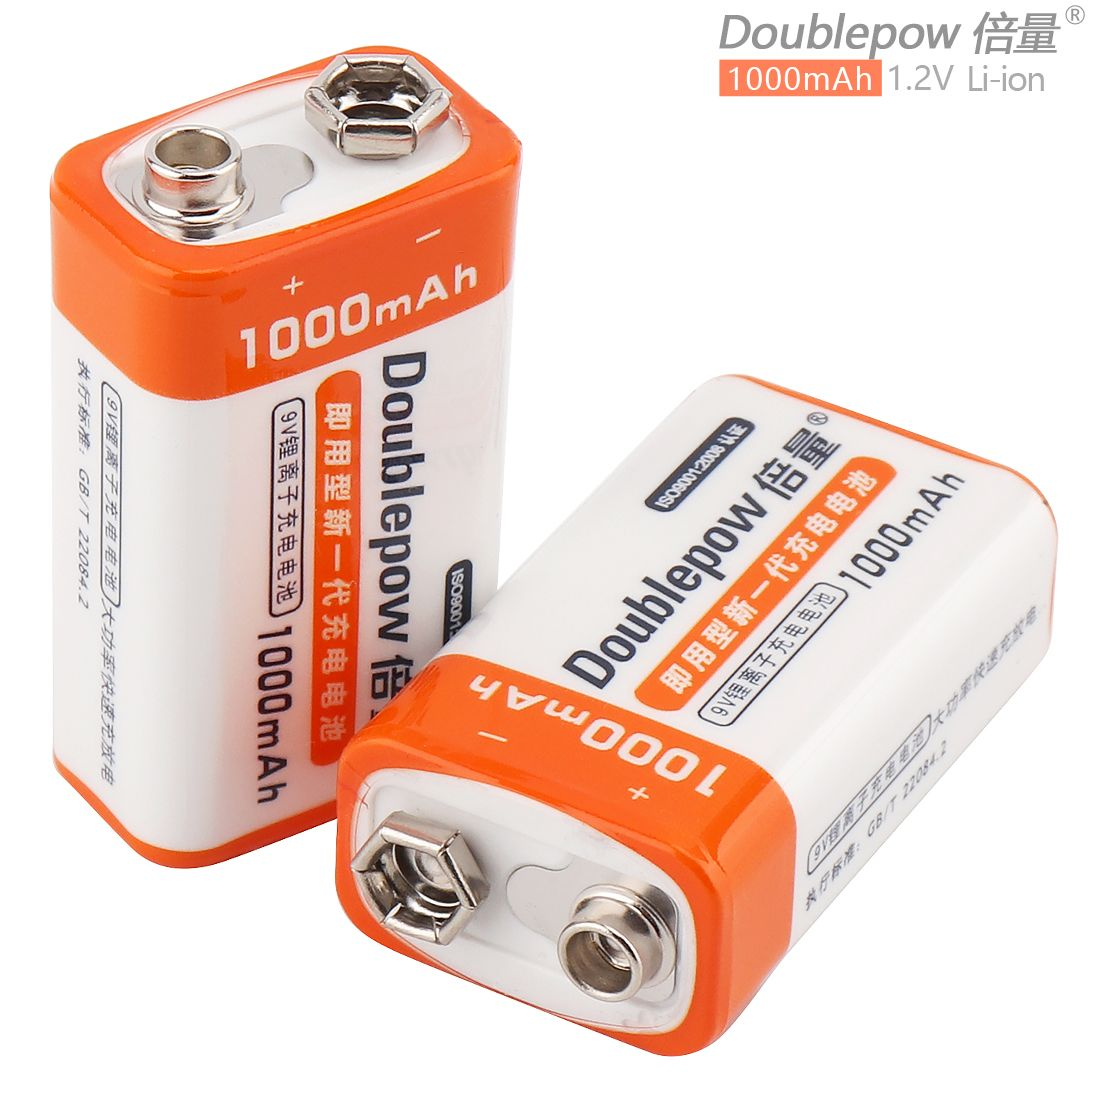 Doublepow 2pcs 9V 1000mAh High Capacity Li-ion LSD Rechargeable Battery with 1200 Cycle for Multimeter/Wireless Microphone/Alarm